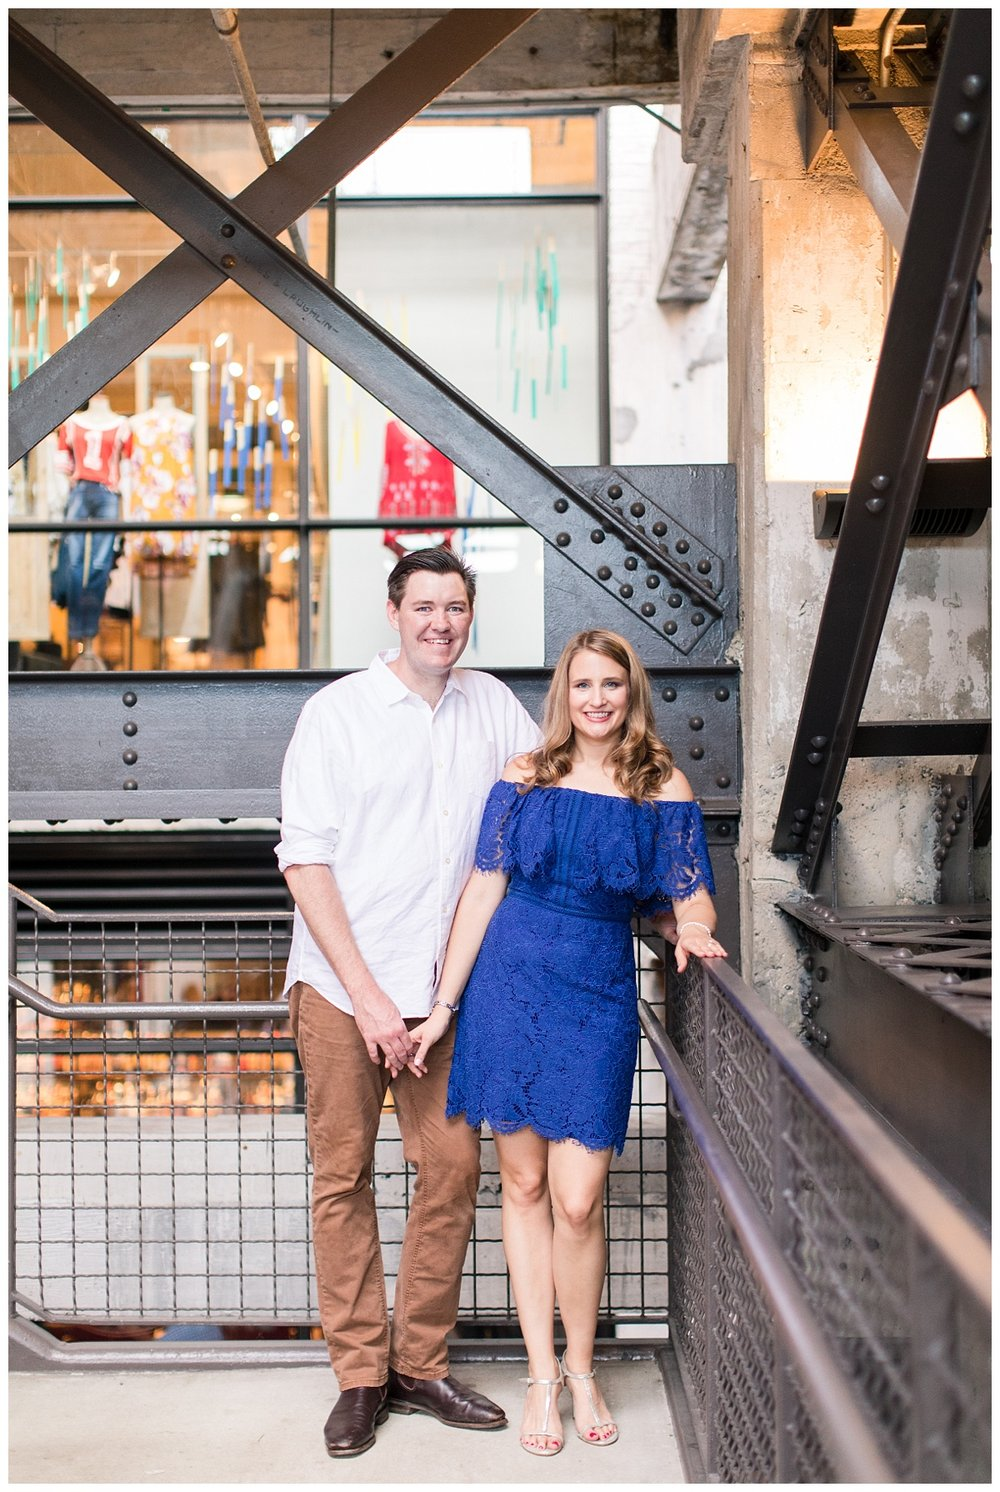 Engagement Pictures_KIm and Hamish_Abby Breaux Photography_Atlanta_Ponce City Market_Jackson Street Bridge_0008.jpg